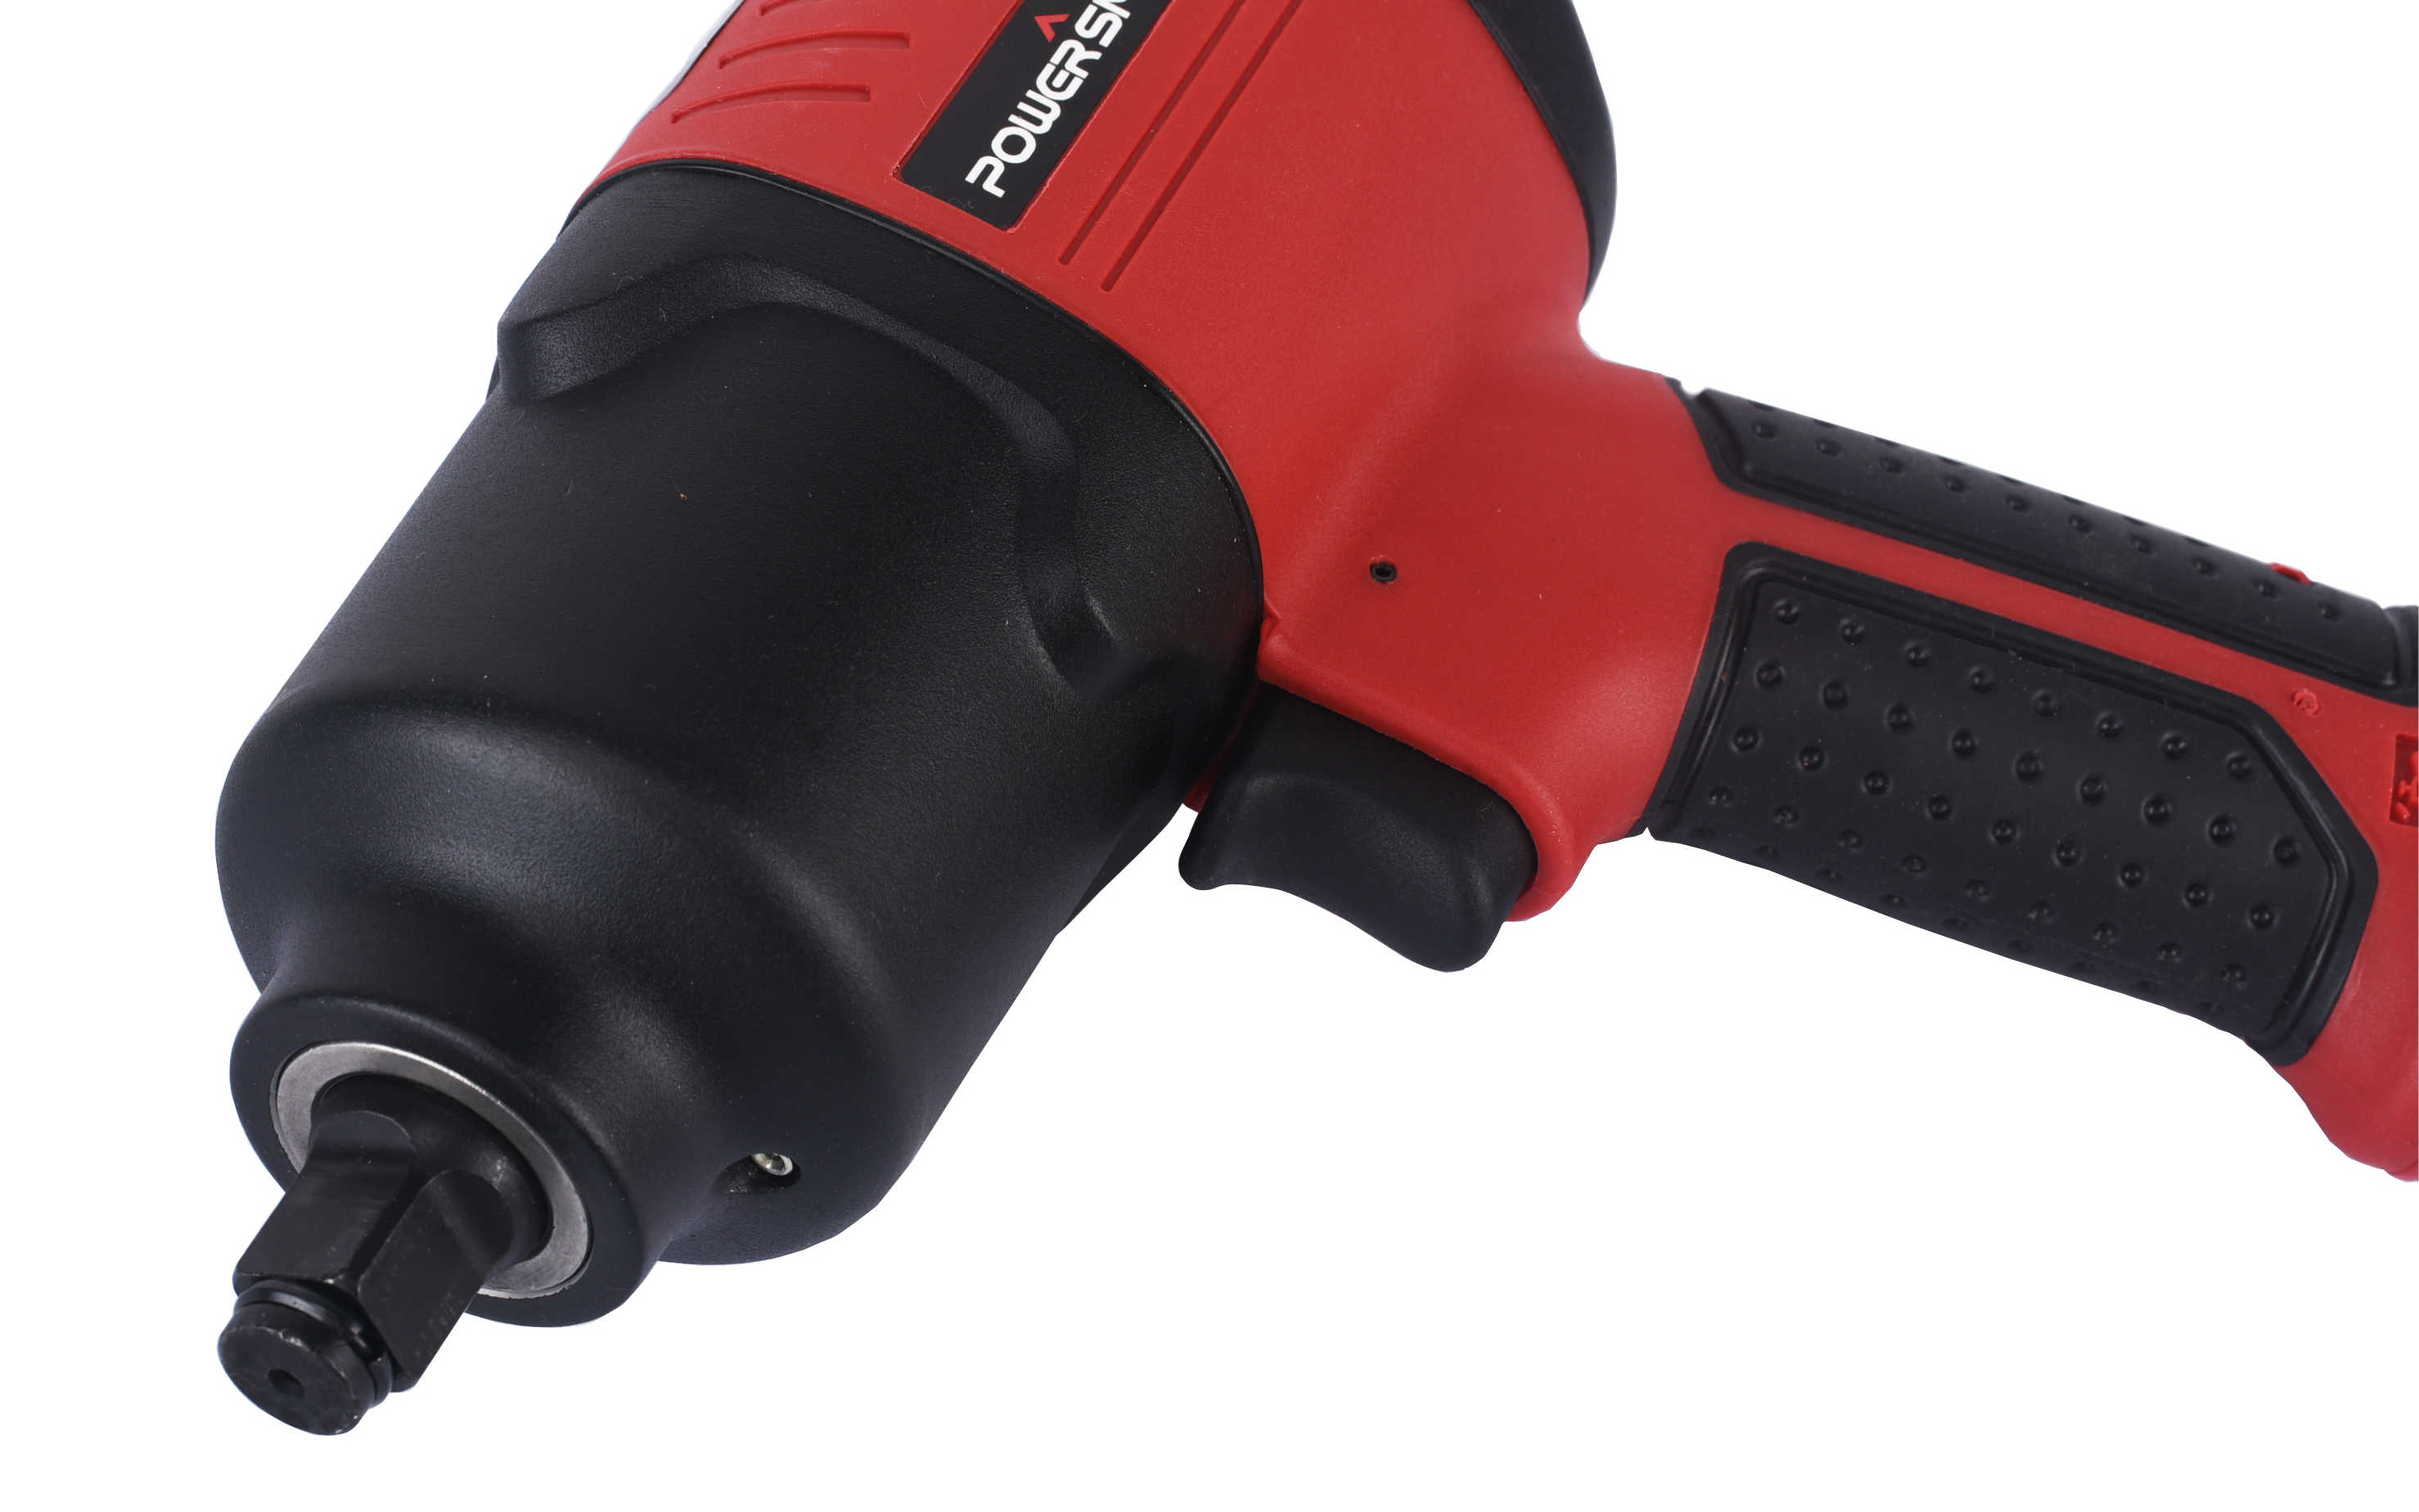 PowerSmart PS6140 1/2- Inch Air Impact Wrench